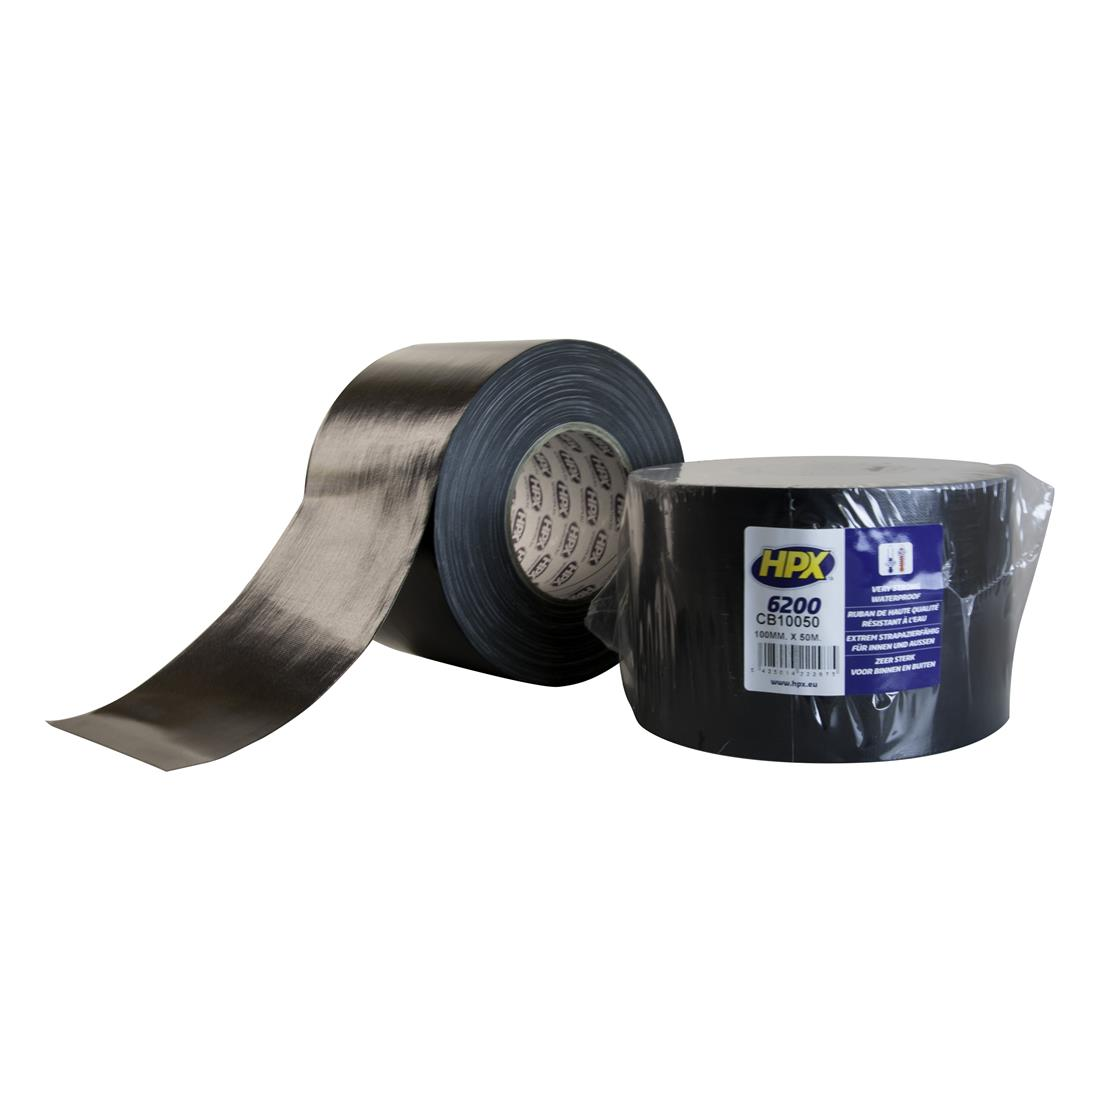 HPX duct tape 100mm x 50 meter zwart (CB10050)